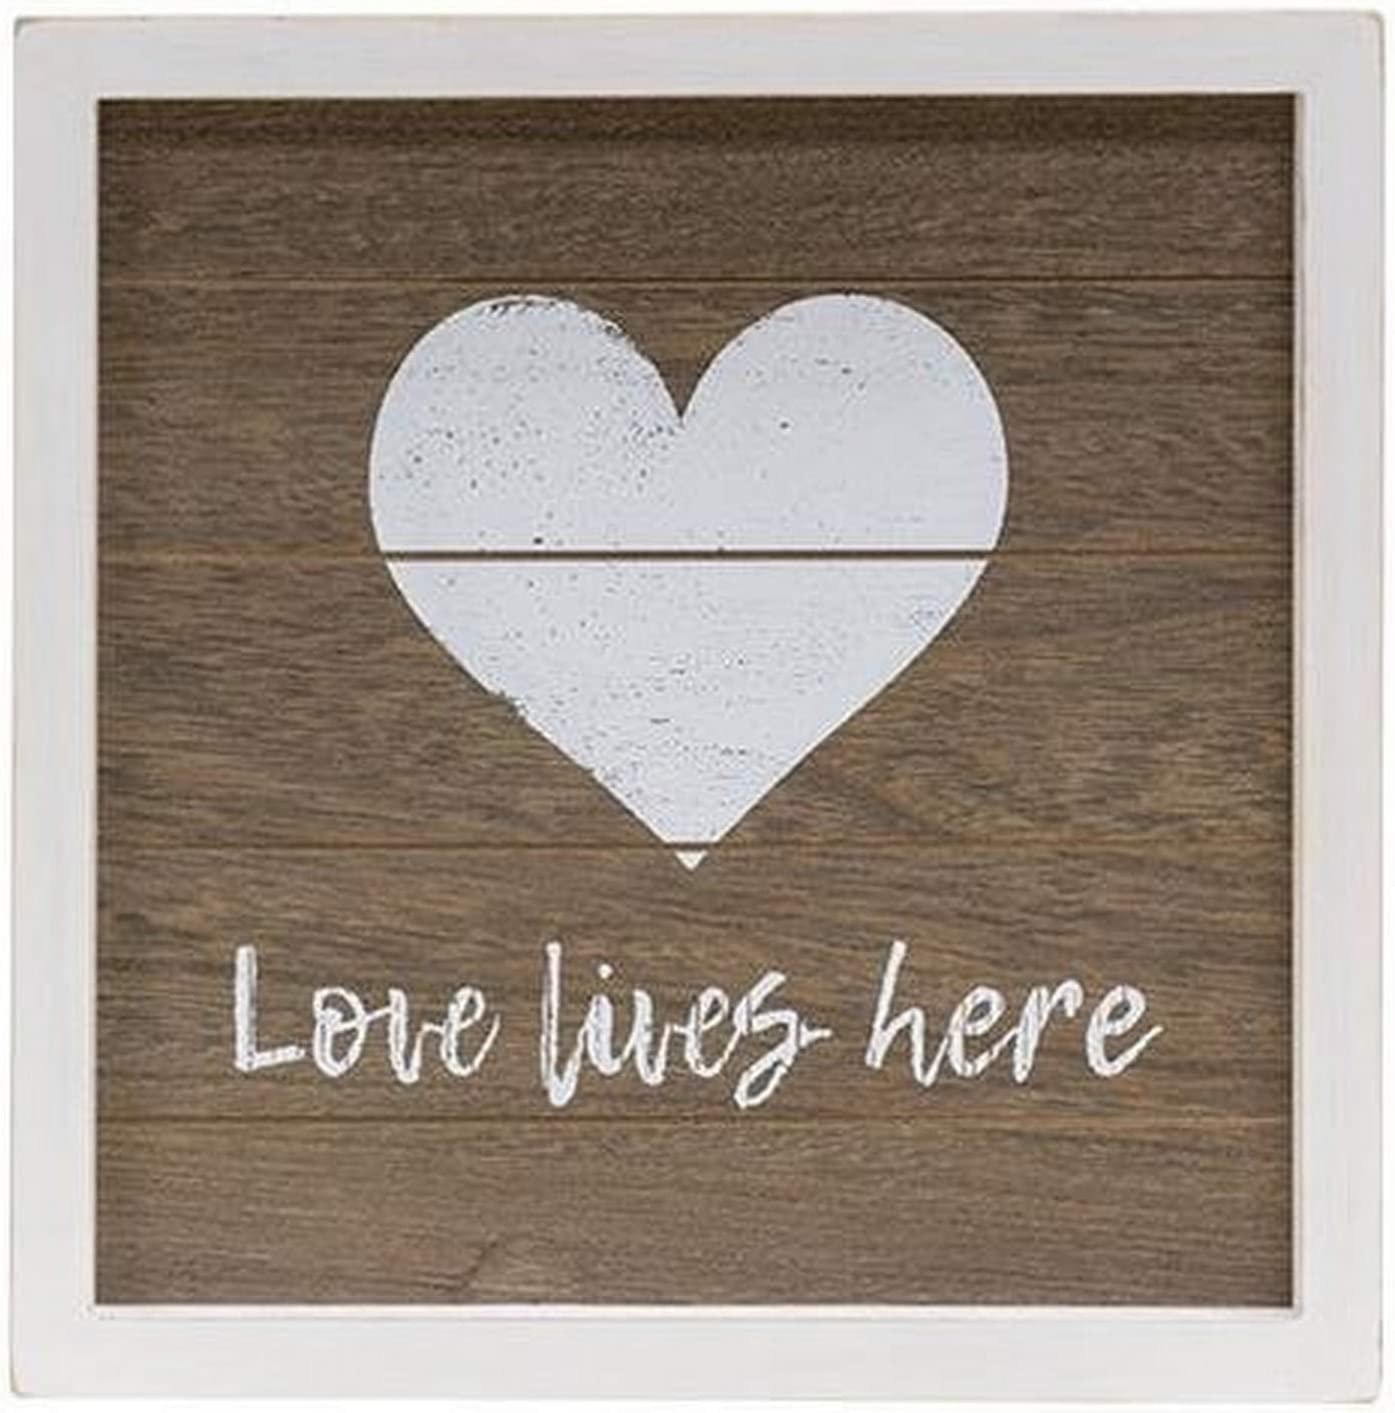 CWI Gifts Love Lives Here White Framed Slat Board Sign with Easel Back, 10x10 inches, Multicolored